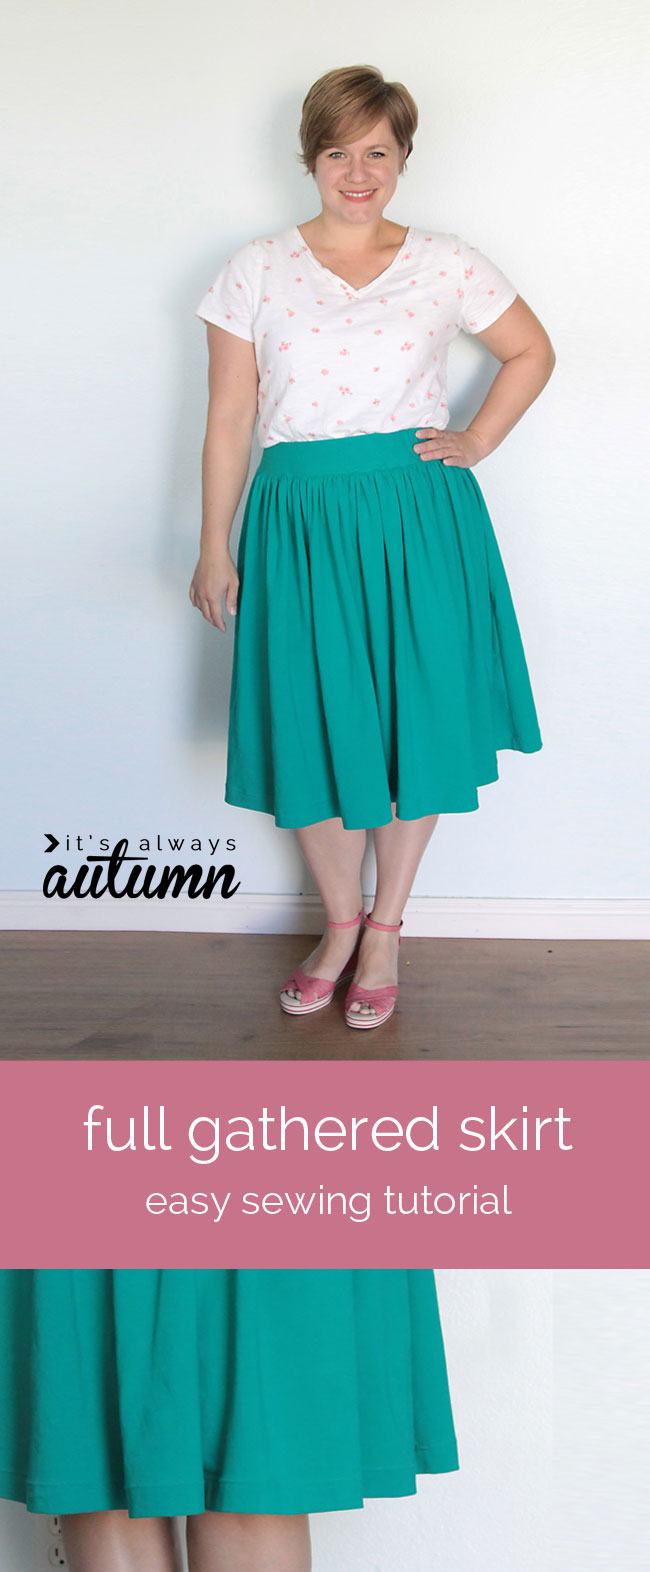 easy gathered skirt for sewing tutorial